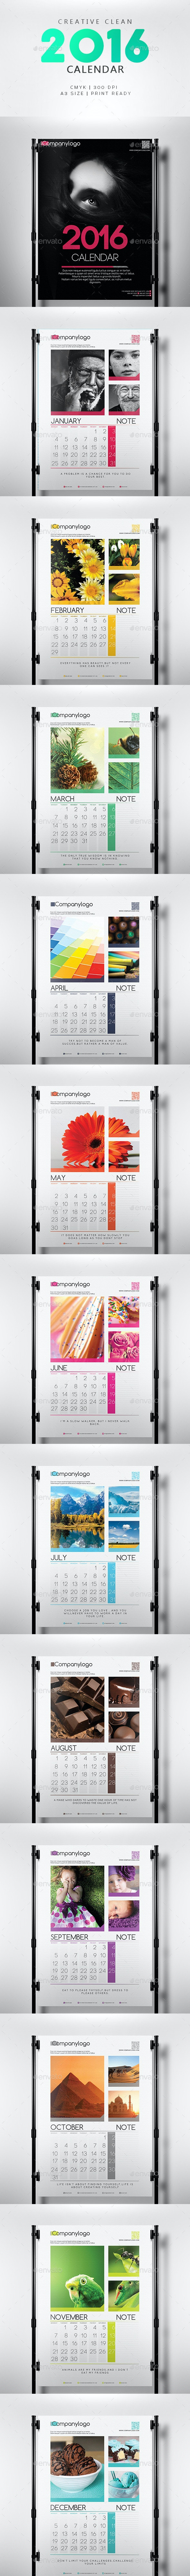 Clean 2016 Calendar - Calendars Stationery